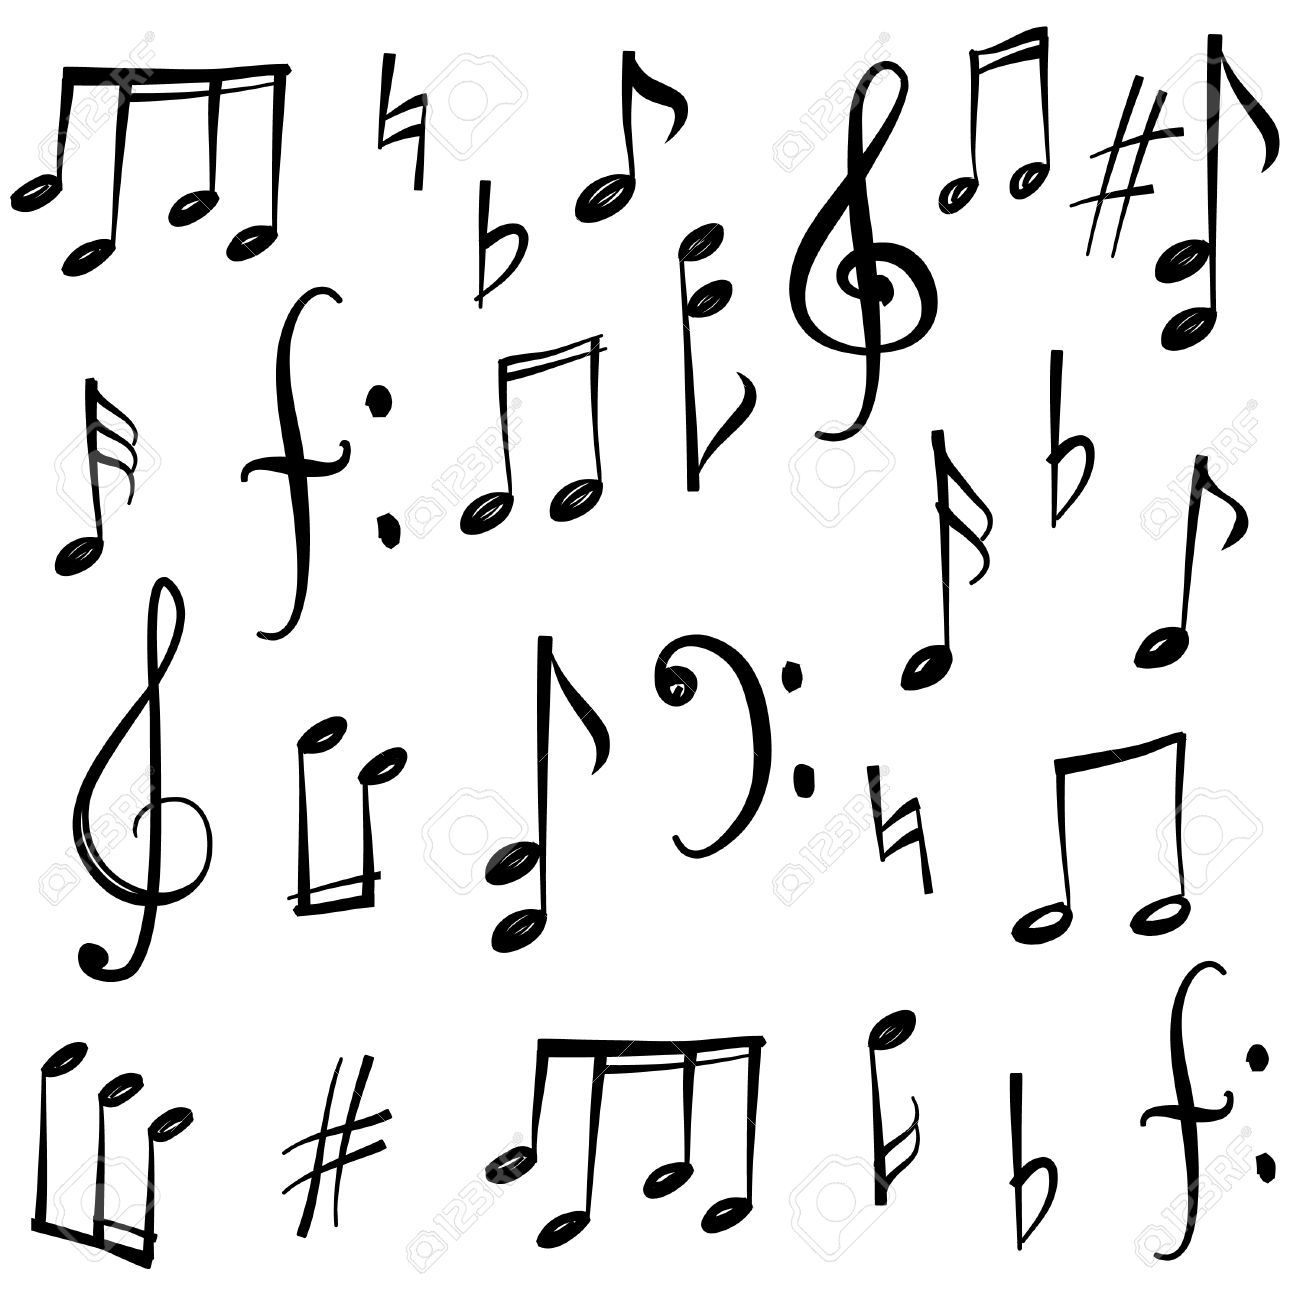 44973740 music notes and signs set hand drawn music symbol sketch music notes and signs set biocorpaavc Images